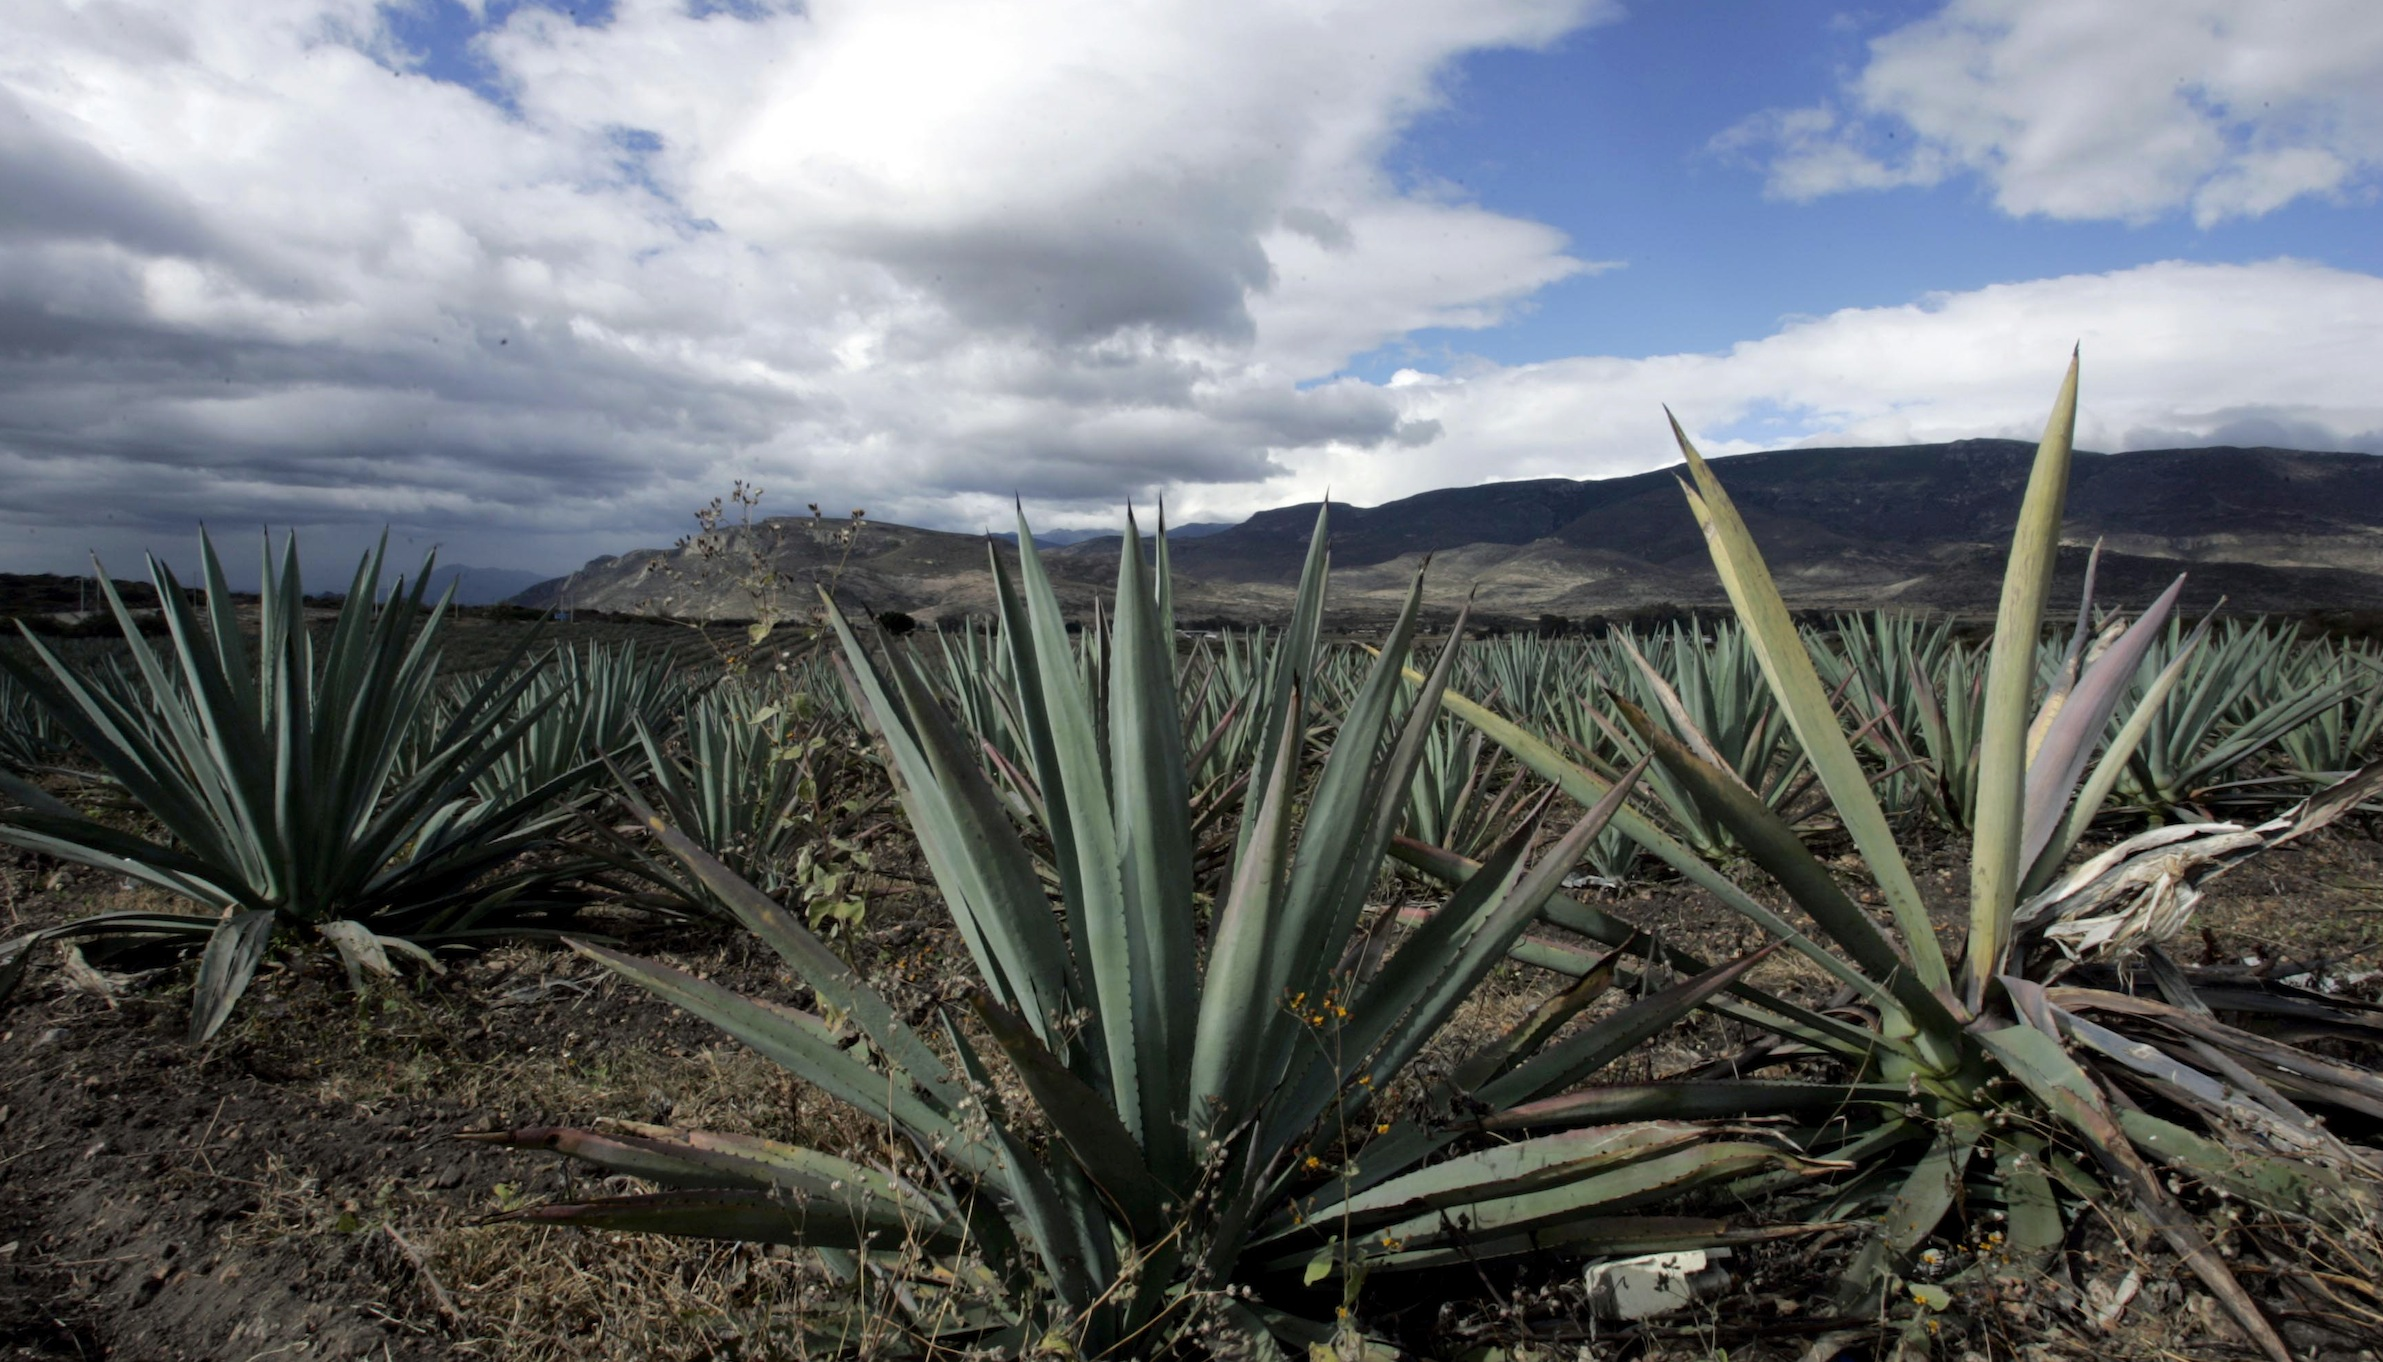 Agave cactus plants are seen in a field near the town of Santiago Matatlan November 14, 2007. Mezcal is produced in the south western state of Oaxaca and is distilled from fermented agave cactus. Picture taken November 14, 2007.    REUTERS/Stringer (MEXICO) - RTXWZ0